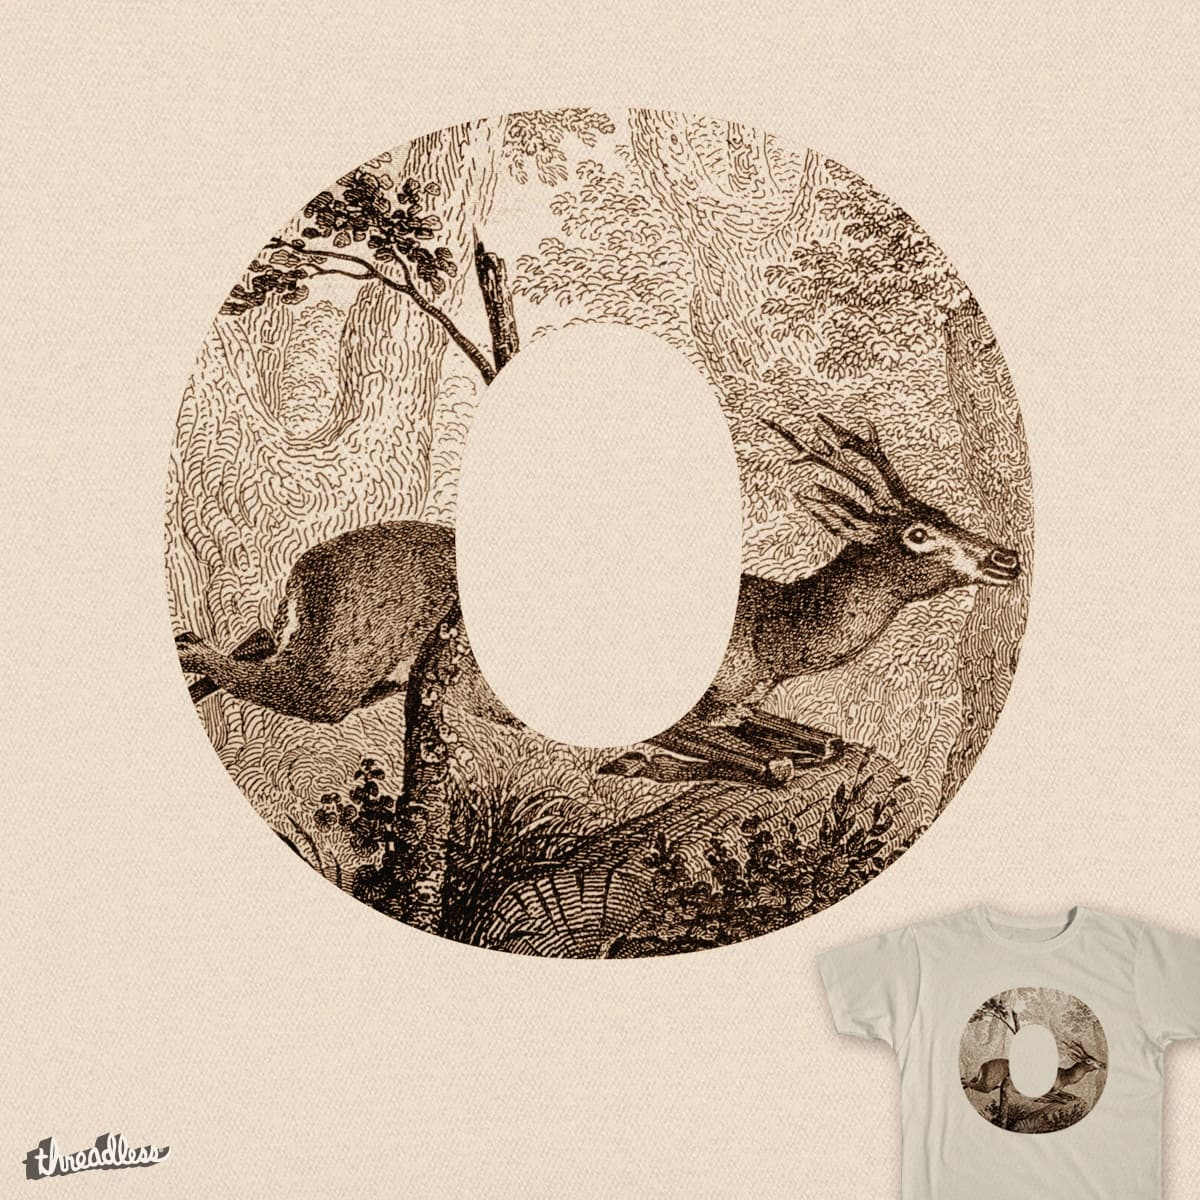 O Deer O Deer by ThePaperCrane on Threadless